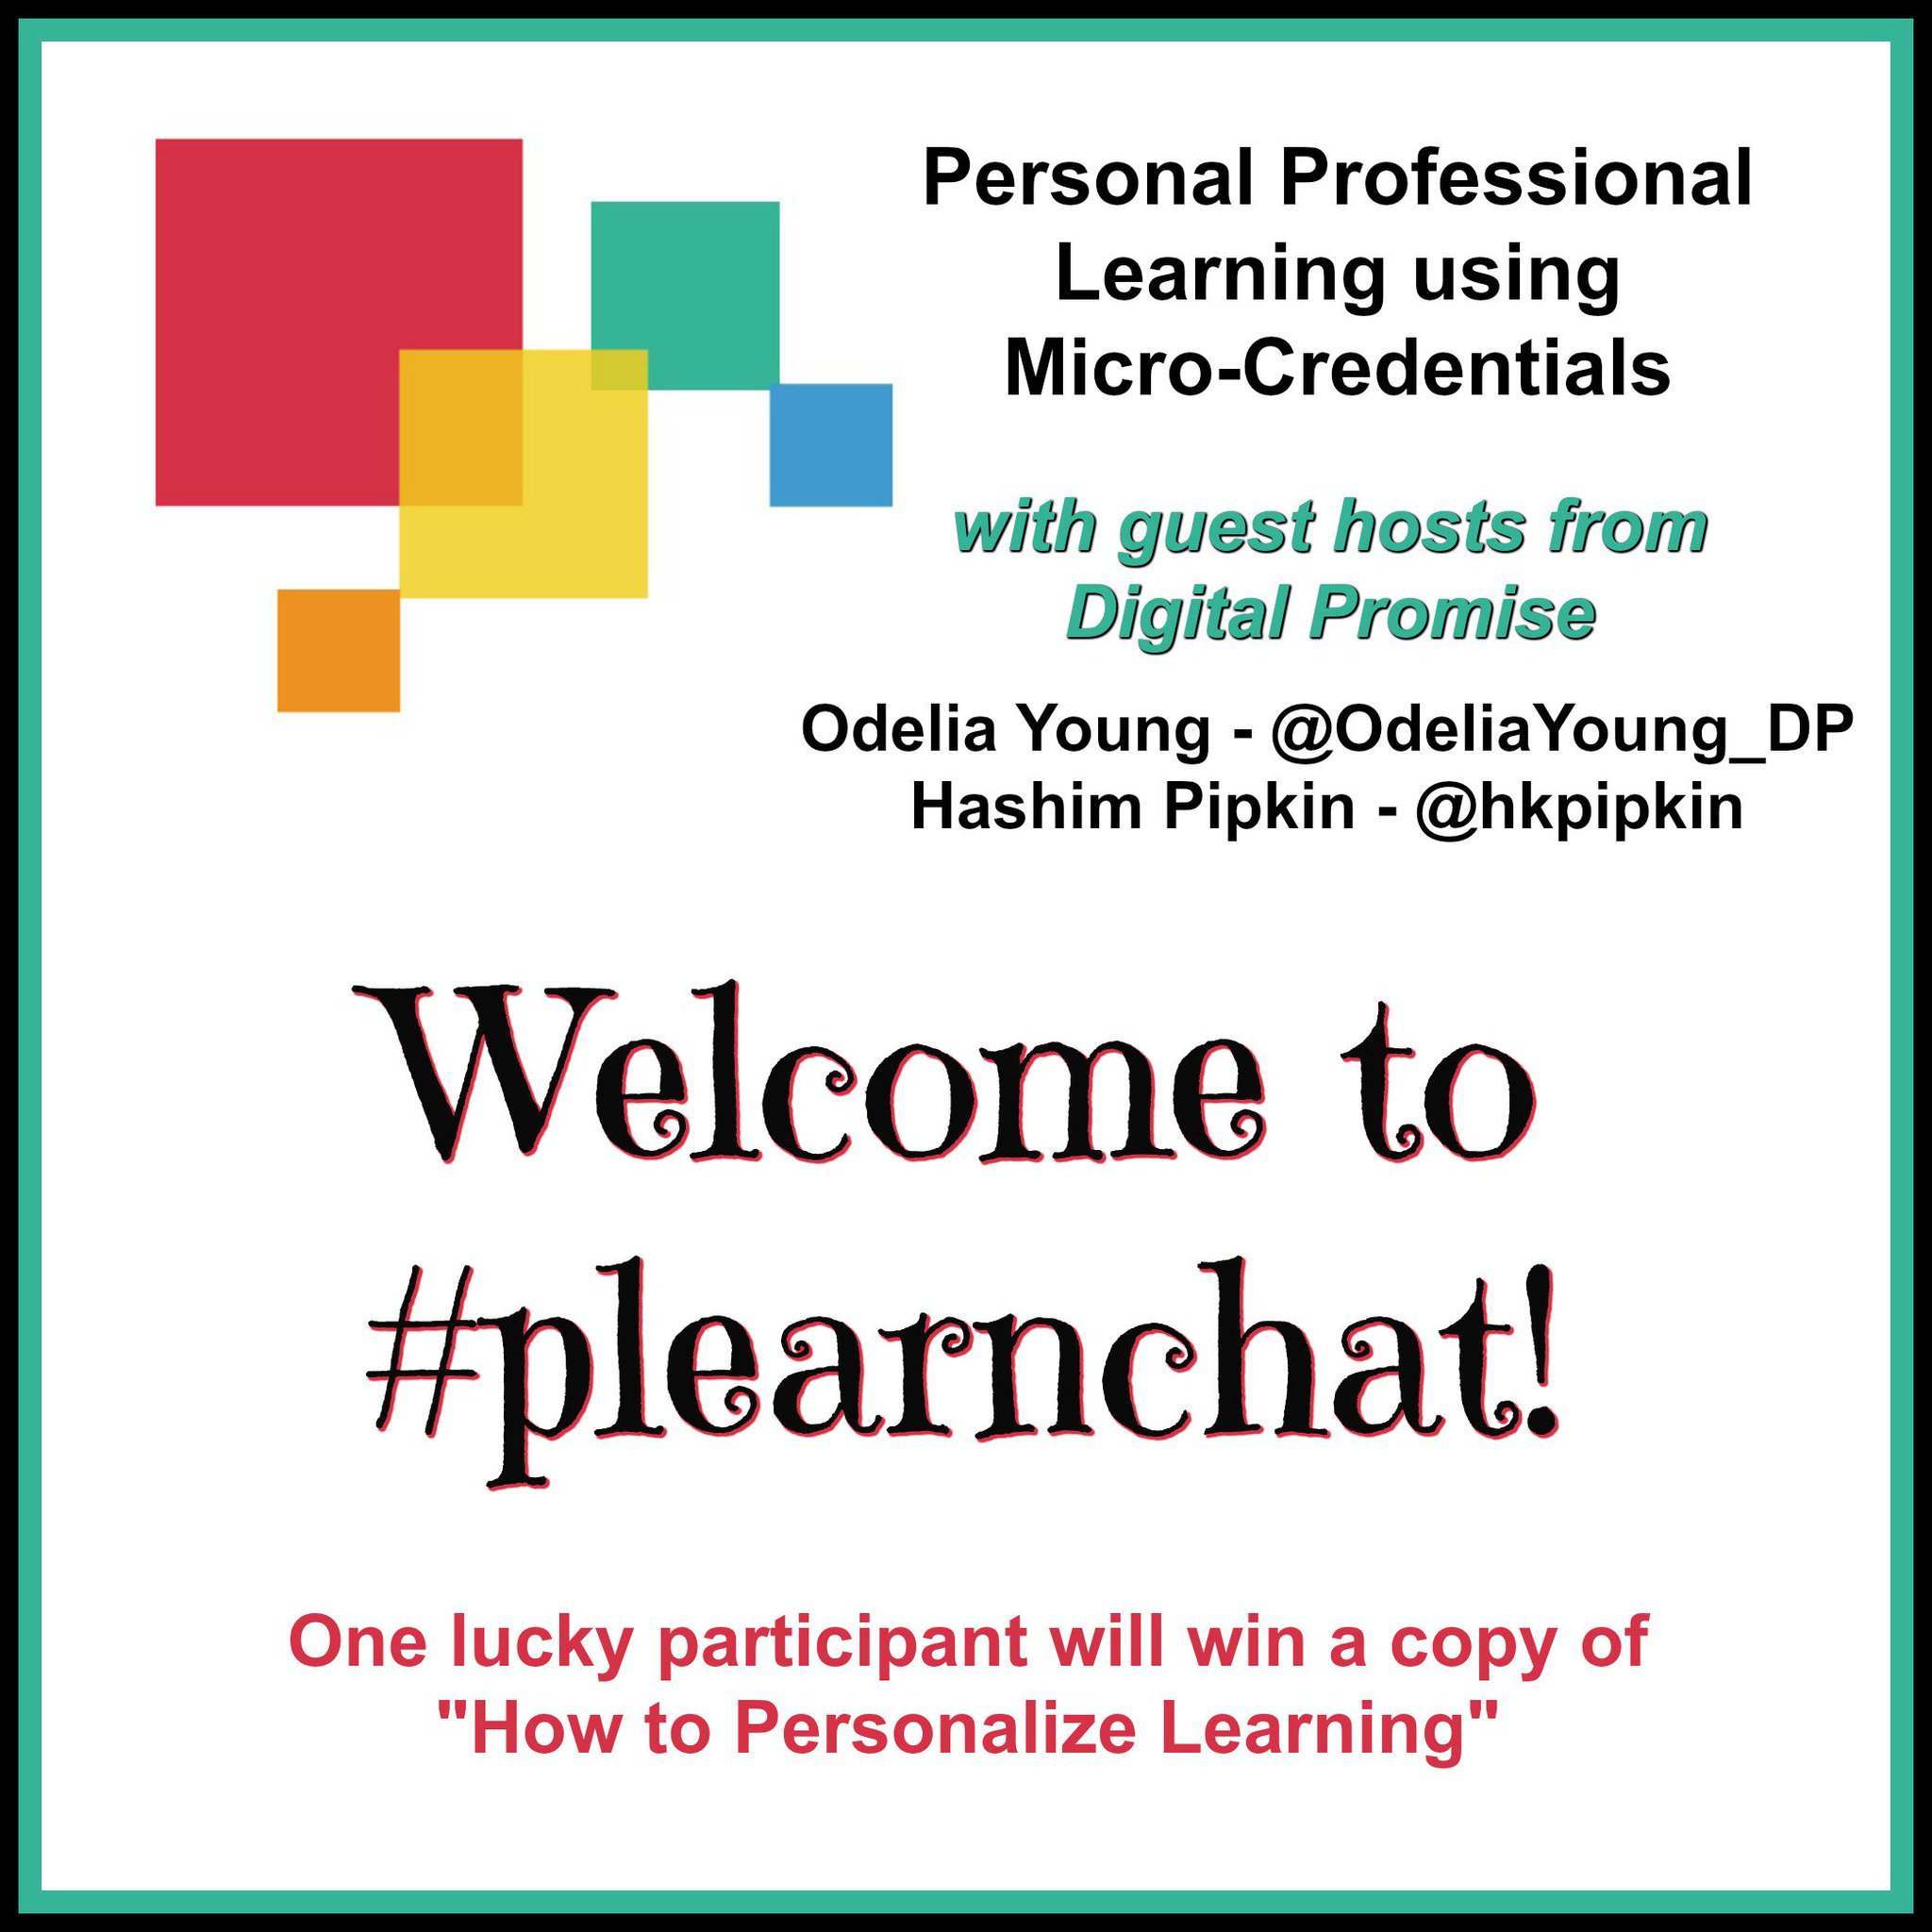 "Welcome to #plearnchat! One lucky participant will win ""How to Personalize Learning""! Please introduce yourself & where you're from. https://t.co/BF3Nnk1qSv"